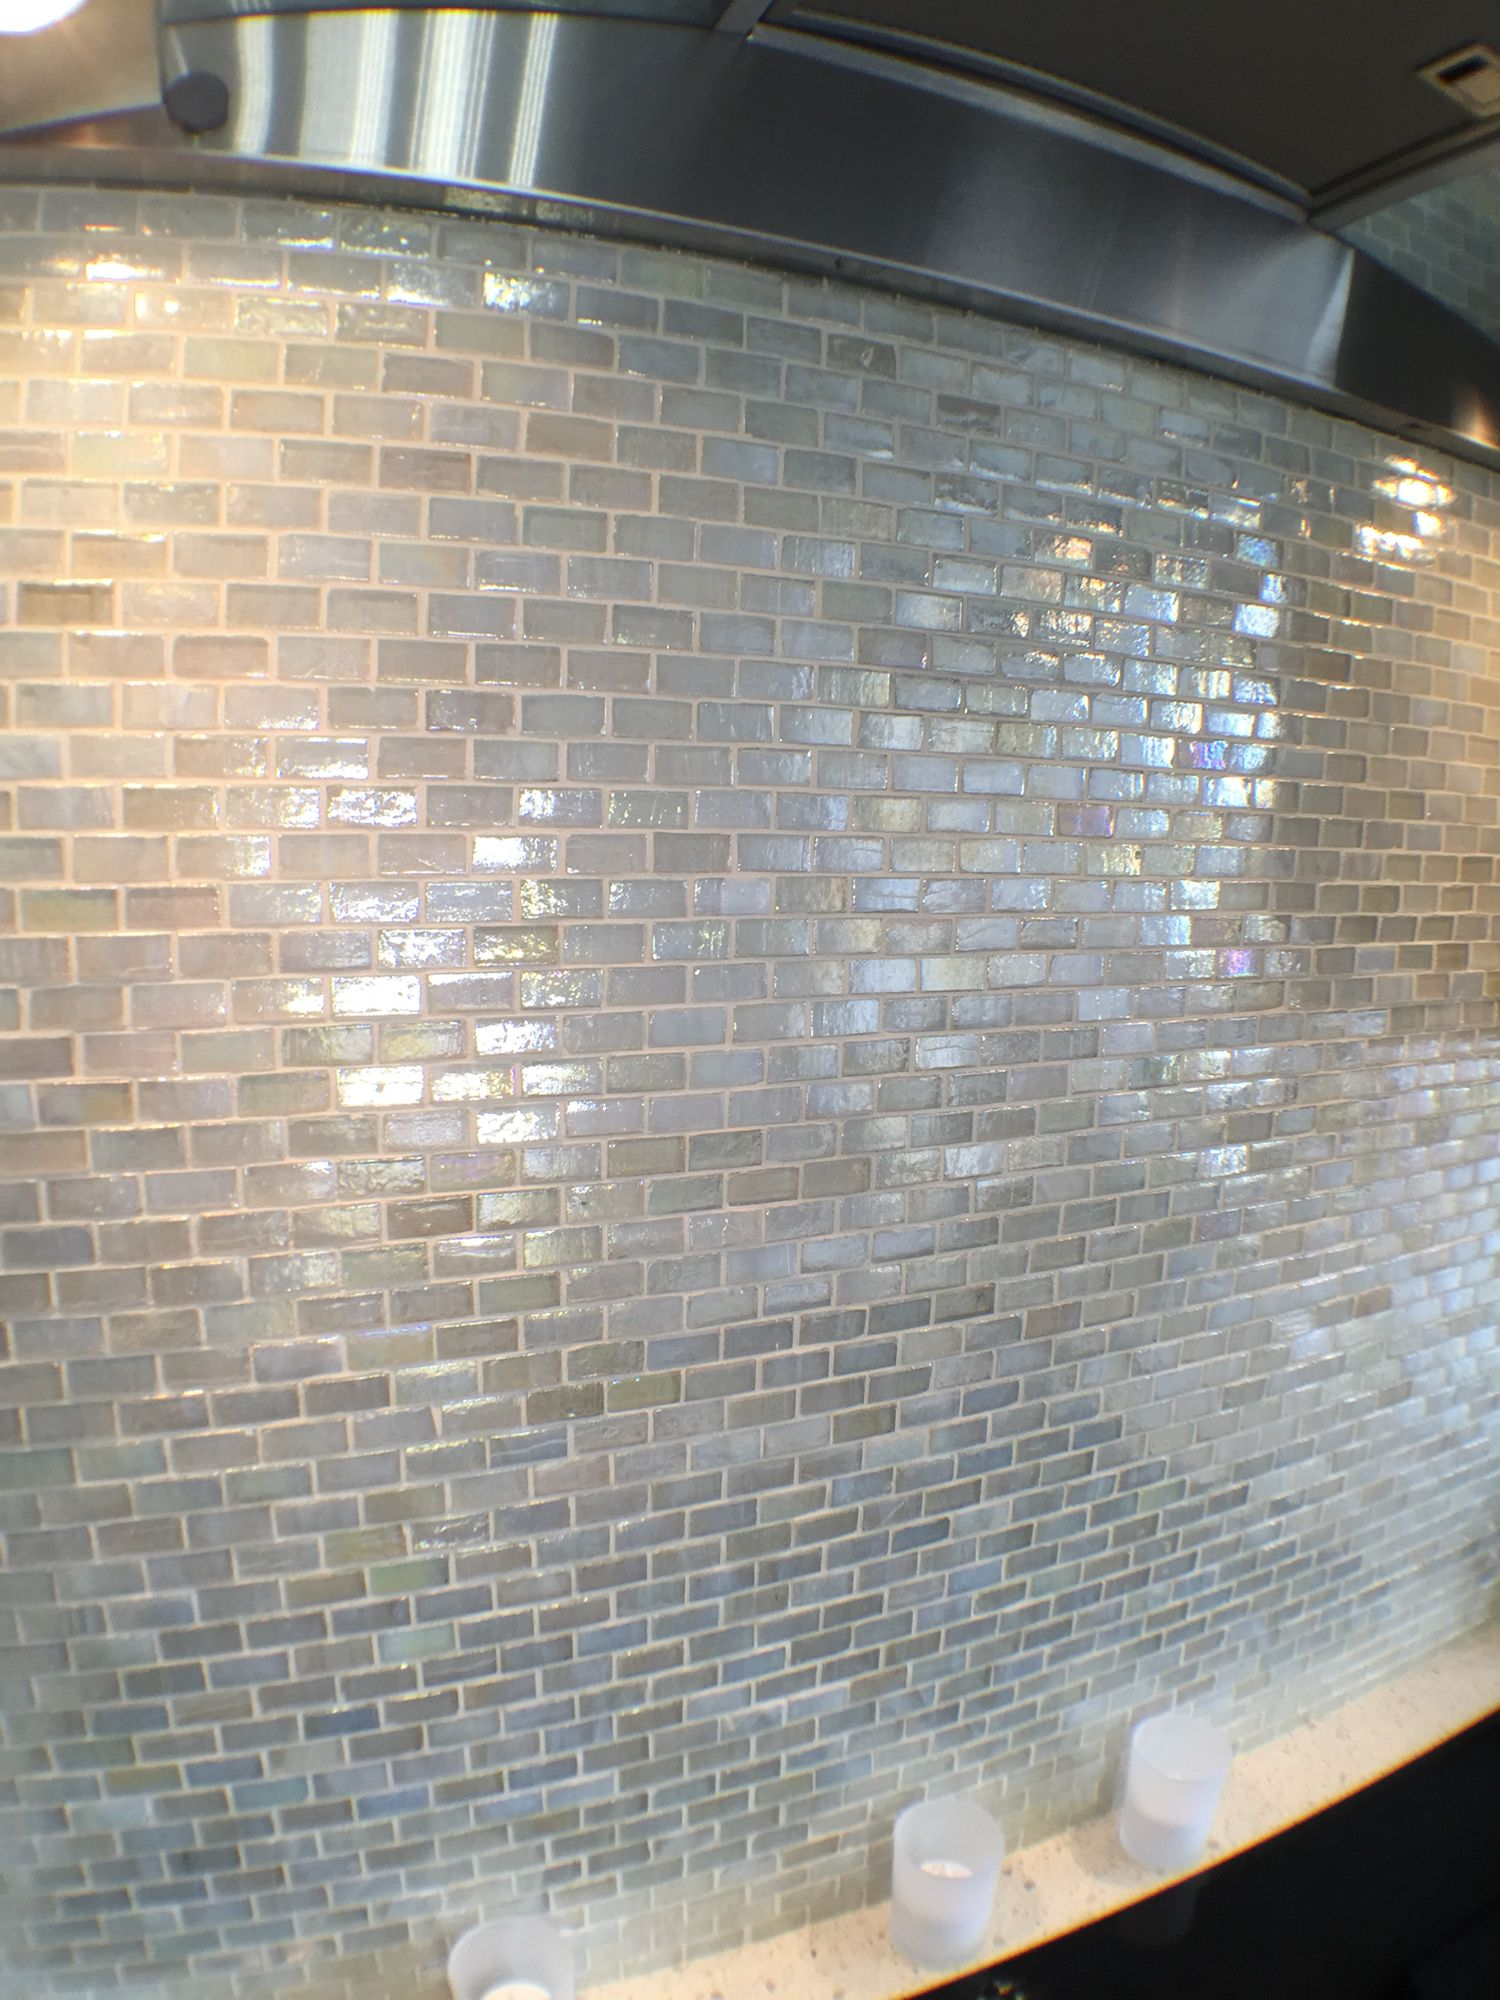 Grout Mosaic Tile Handmade Glass Mosaic With White Epoxy Grout Tiles Have A